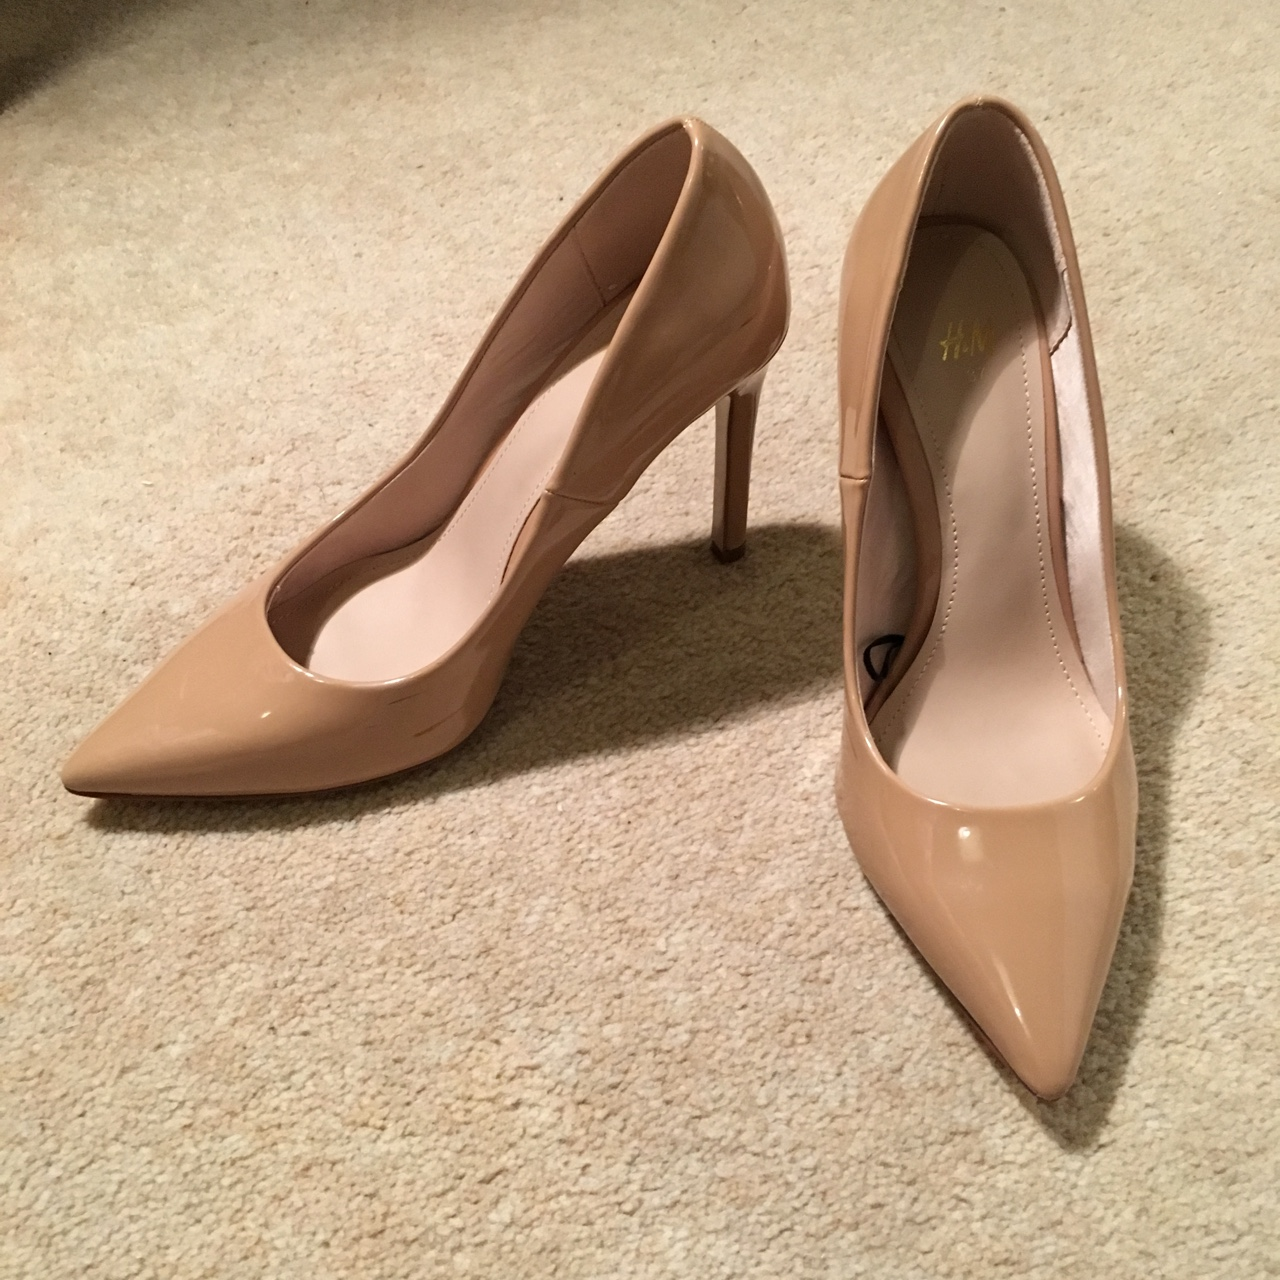 Beige nude court shoes from H\u0026M in a